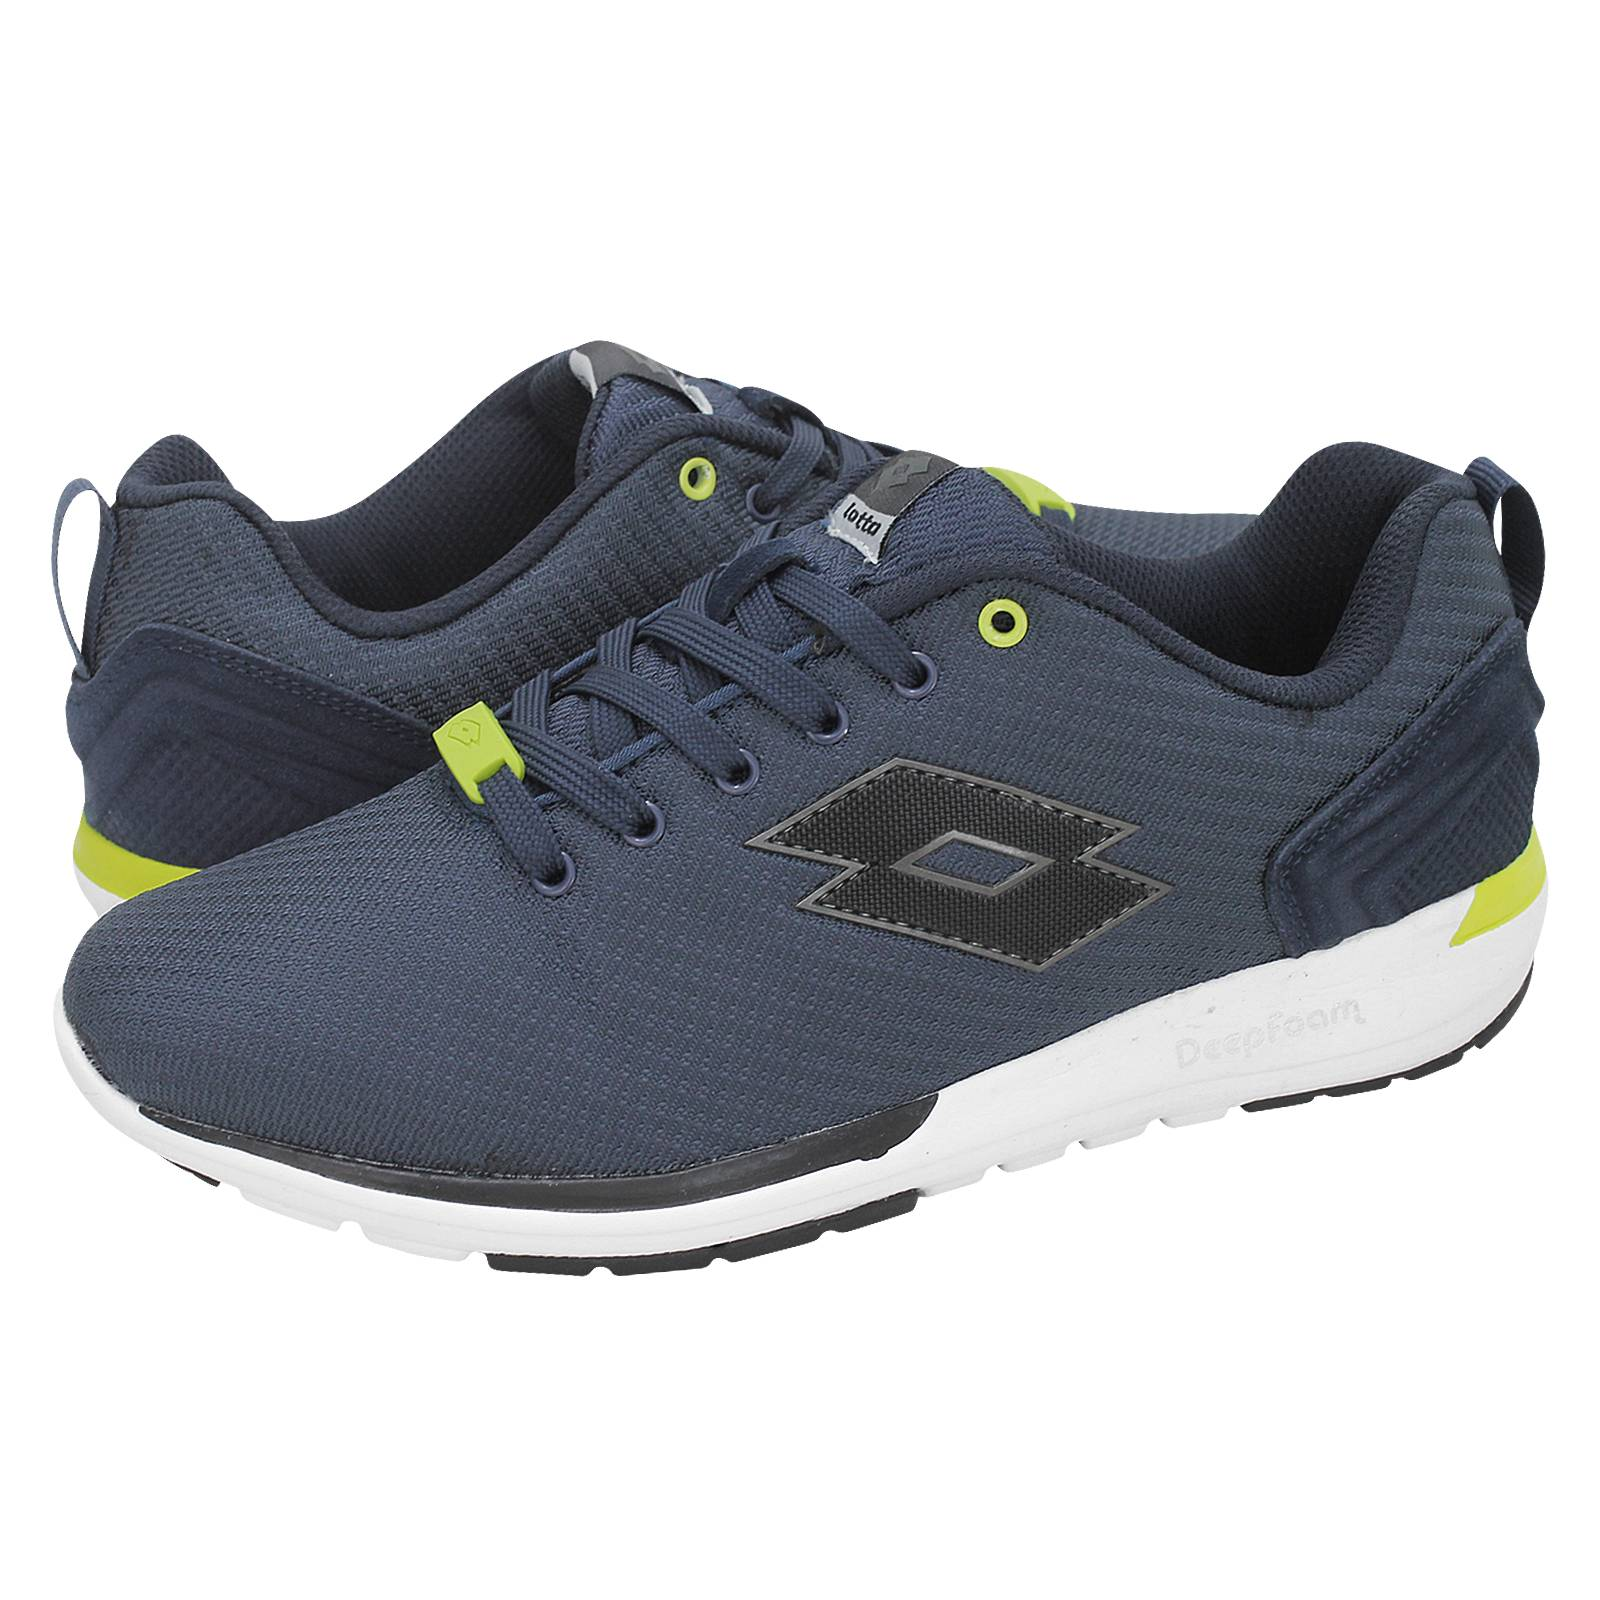 Cityride AMF, Mens Running Shoes Lotto